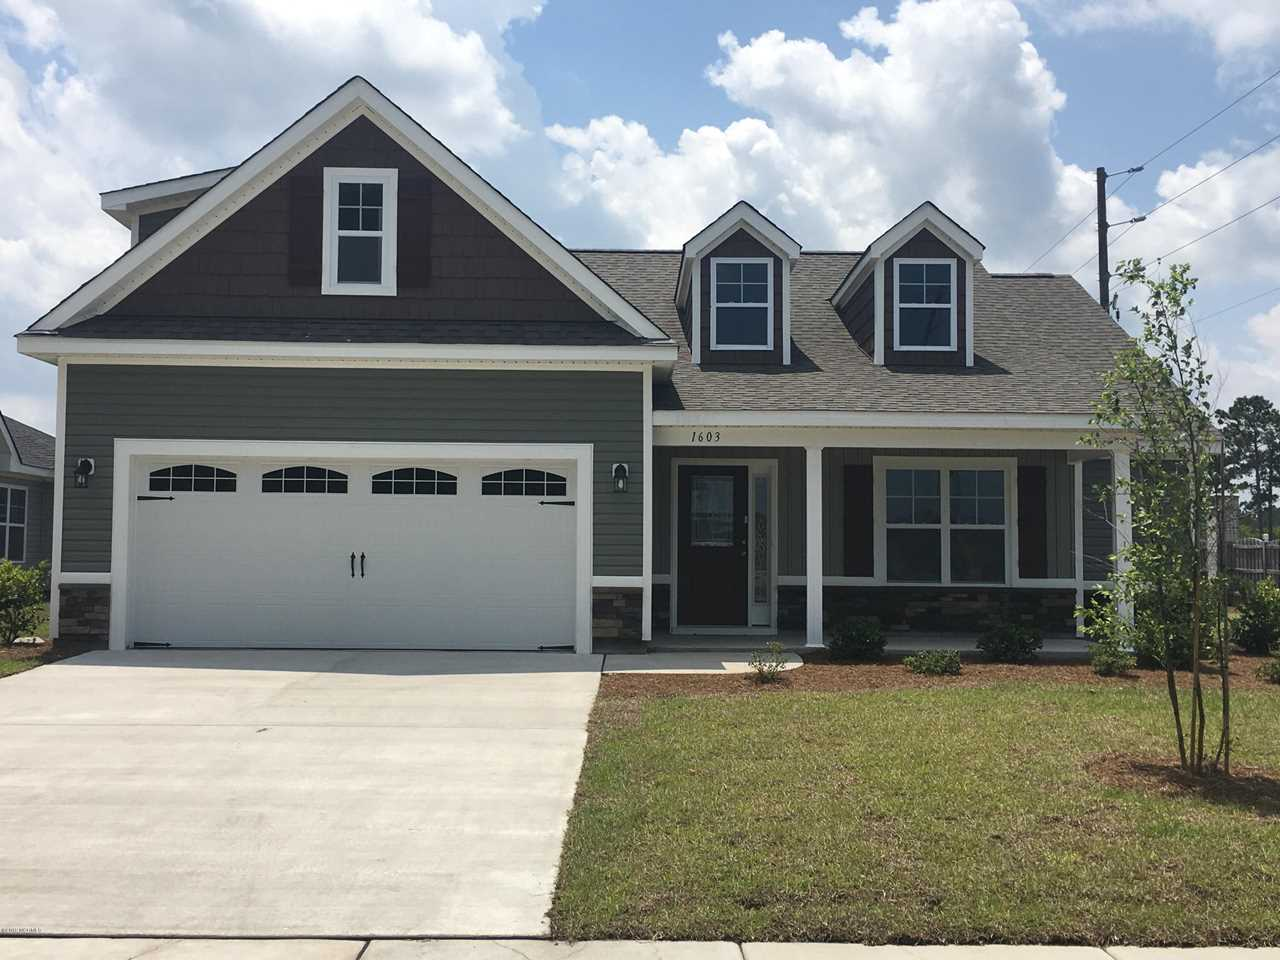 Home For Sale At 1603 Pine Harbor Way, Leland NC in Windsor Park Photo 1